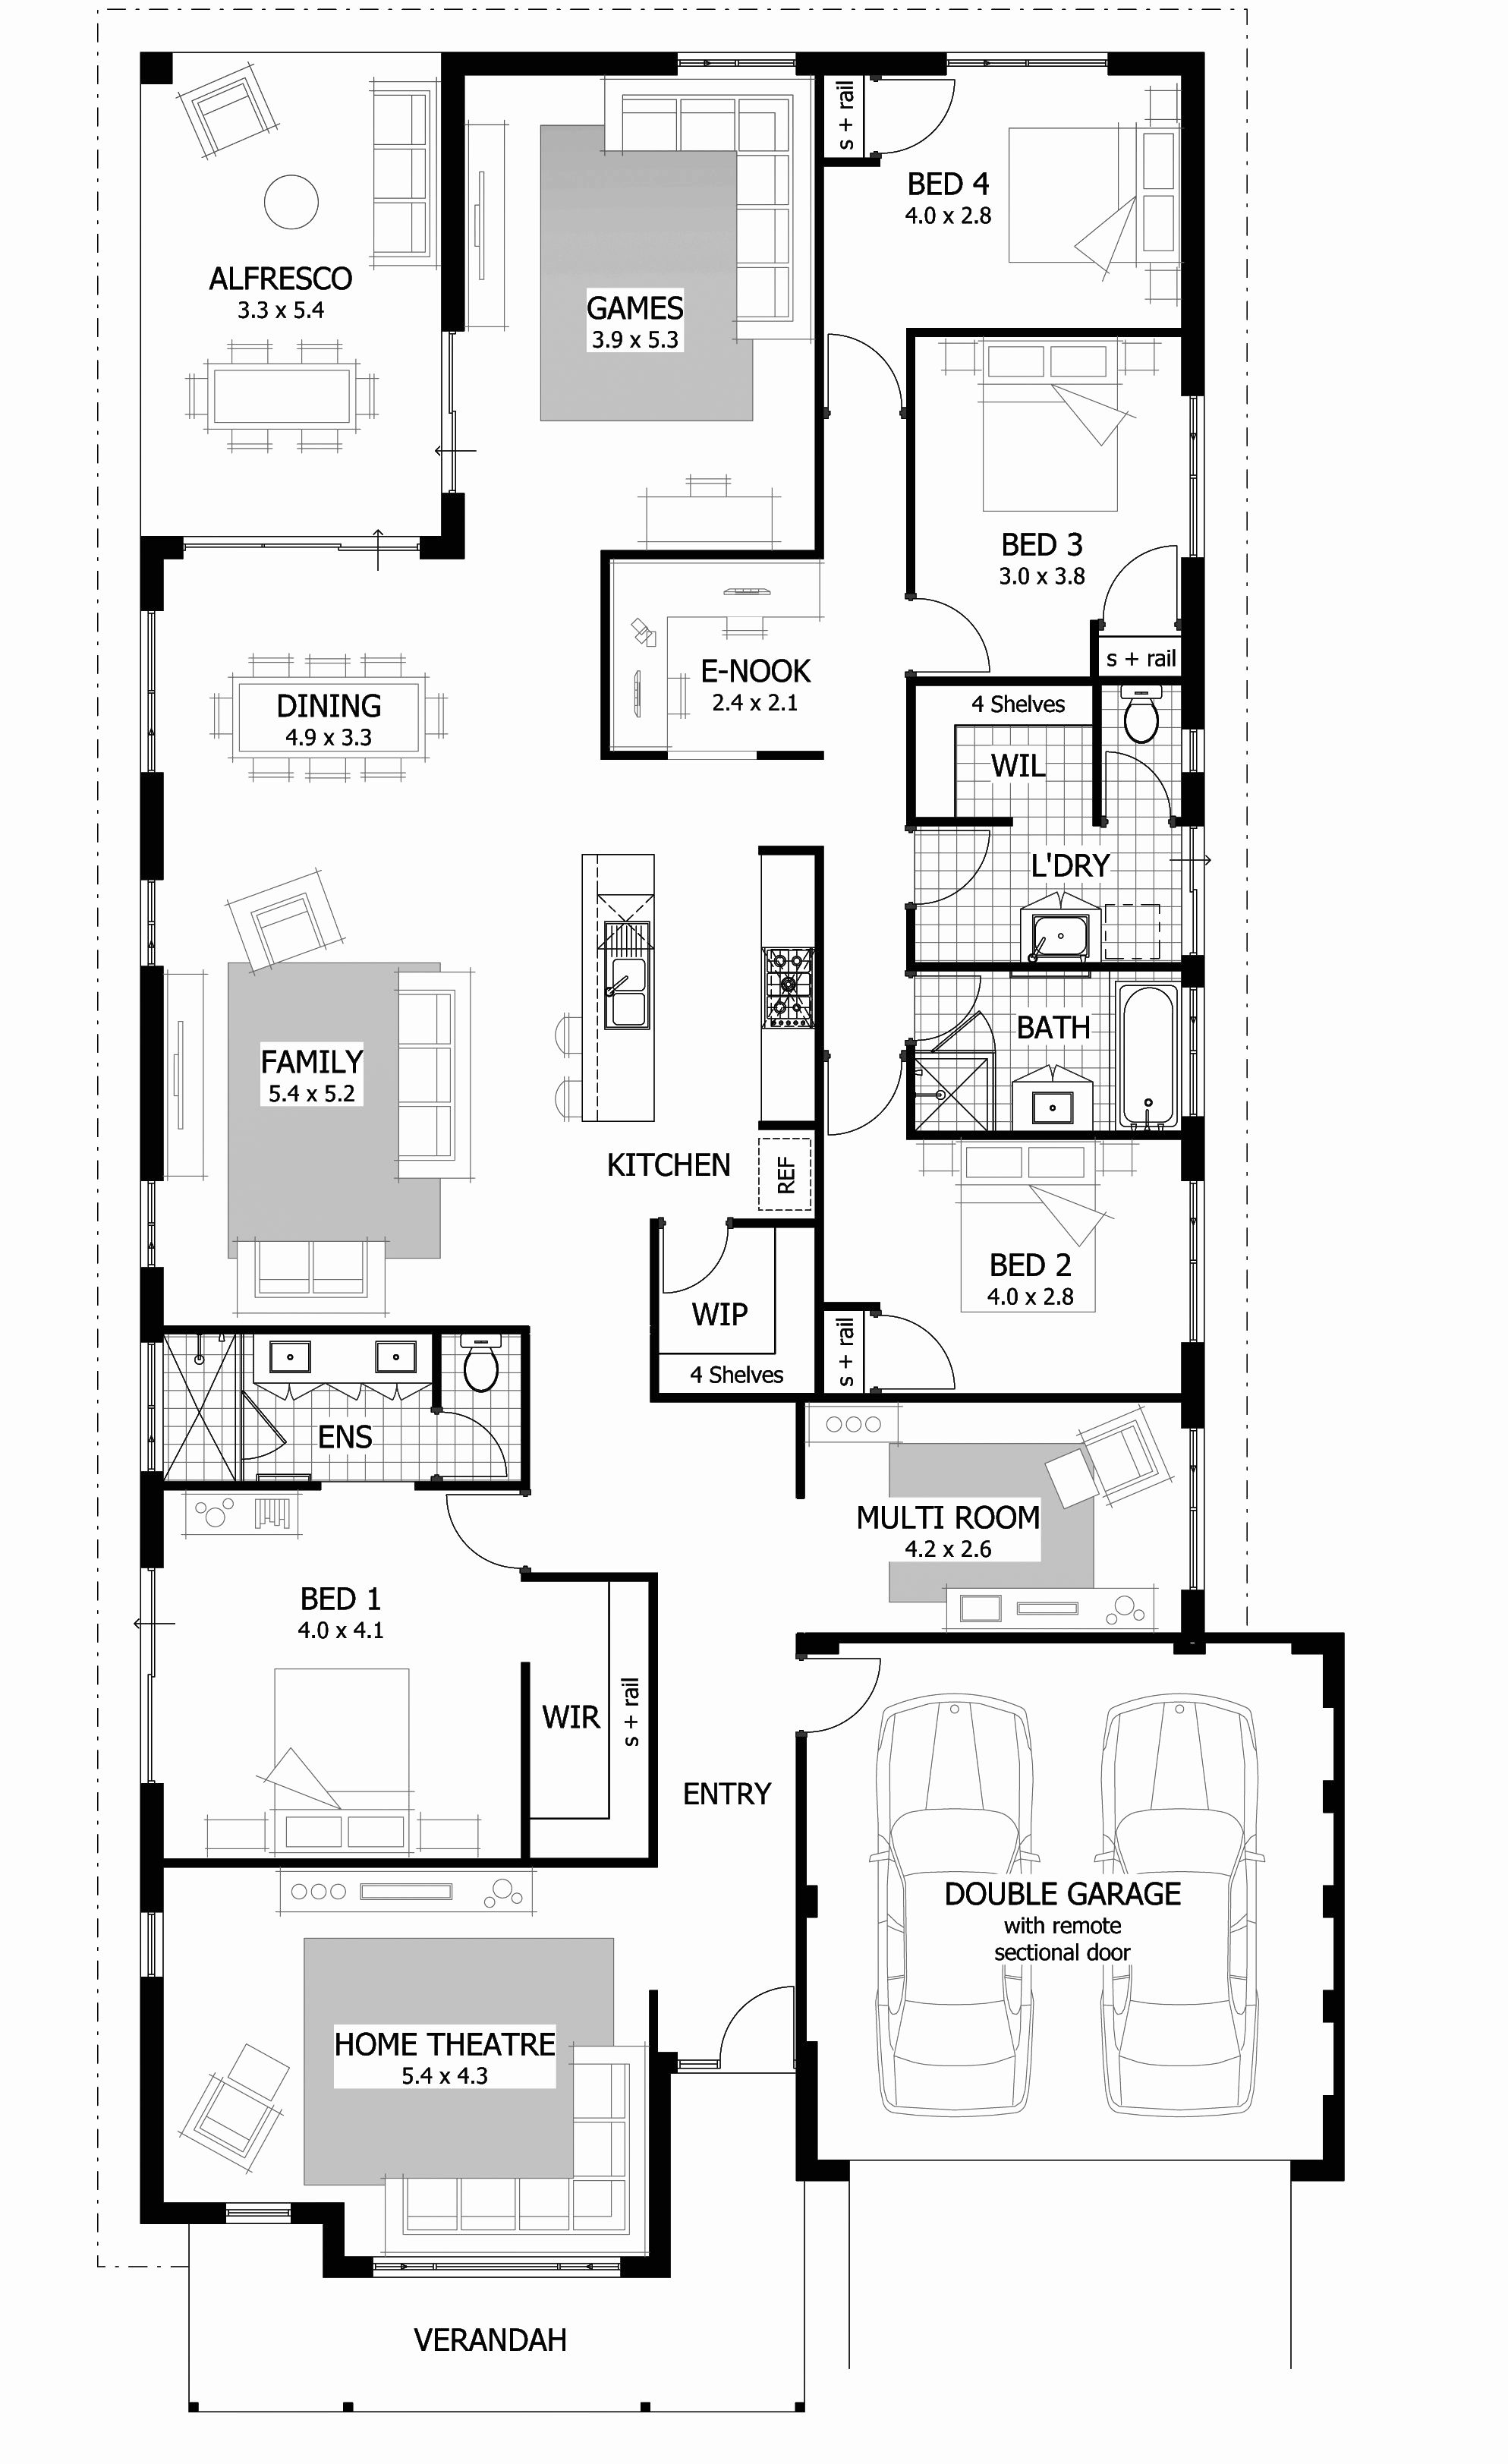 Modern 1 Story House Plans Luxury Three Bedroom Floor Plans Modern 3 Bedroom 3 5 Bath 1 Story H Rectangle House Plans Narrow House Plans Open Floor House Plans